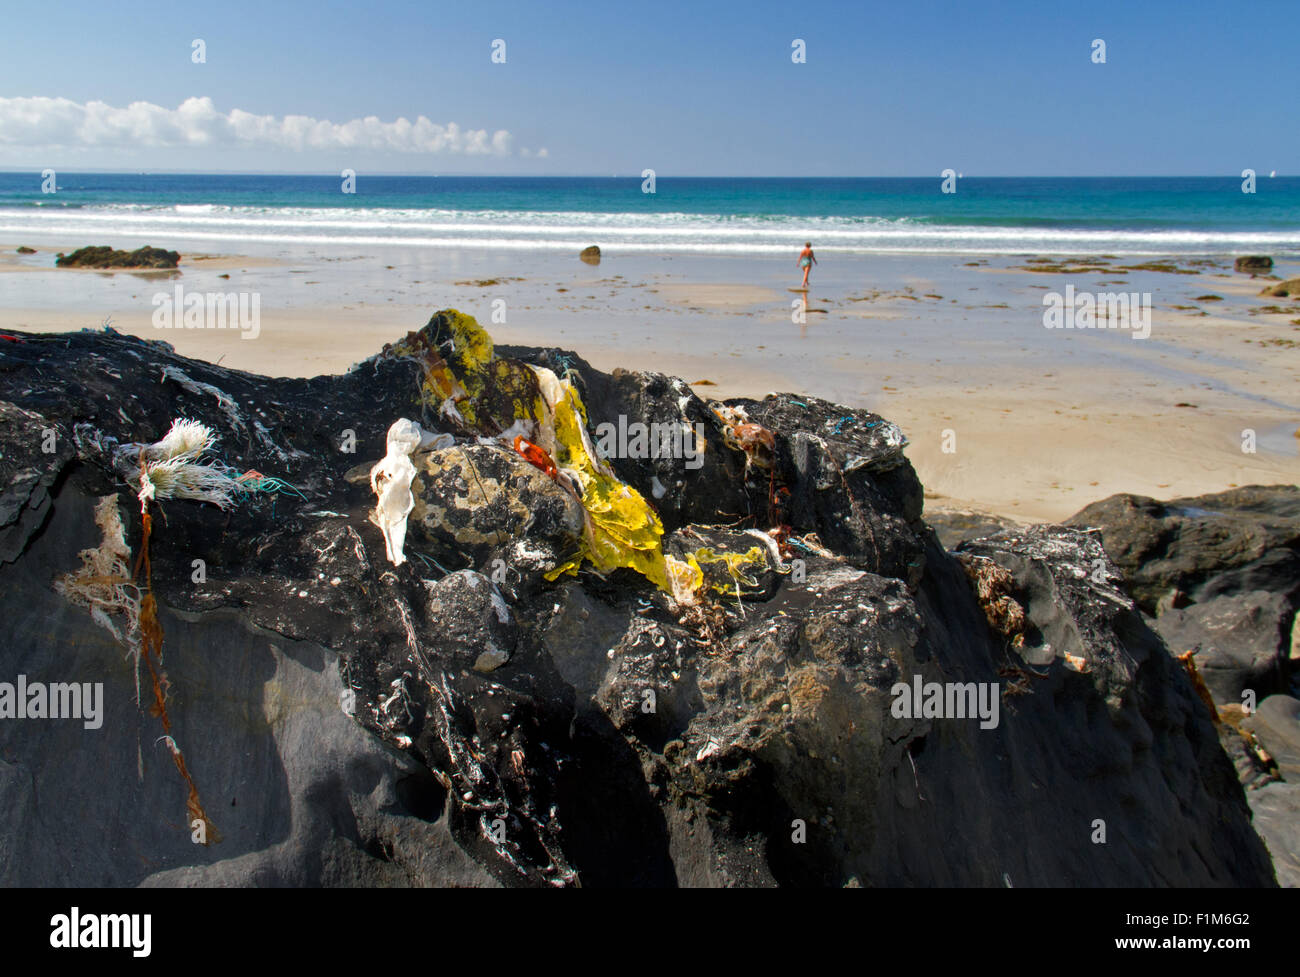 Relic of the Amoco Cadiz oil spill in 1978: an asphalt crust on he rocks on the coast of Brittany in France - Stock Image